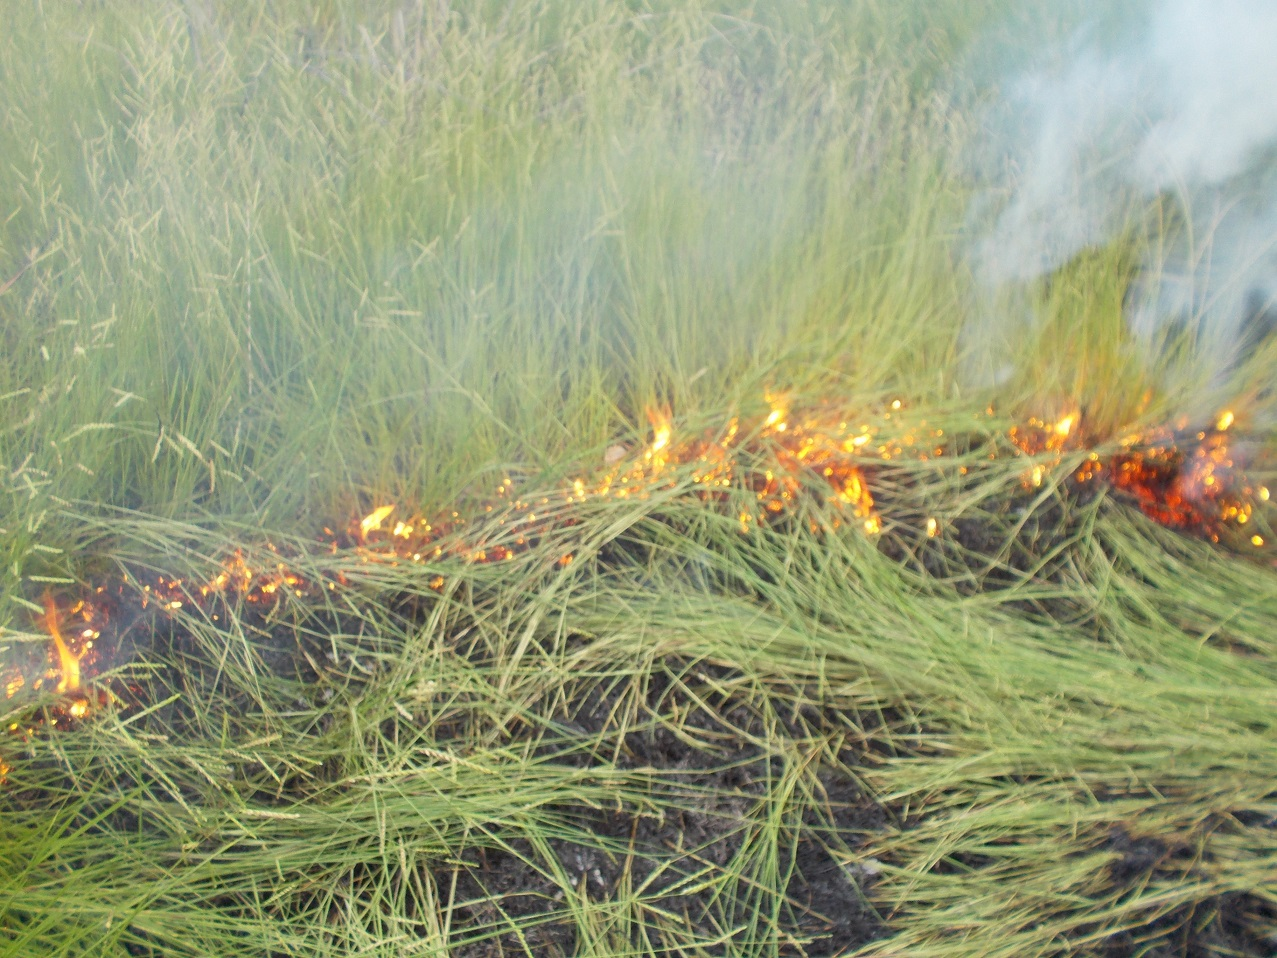 Green grass being felled as the dry ground-cover burns…